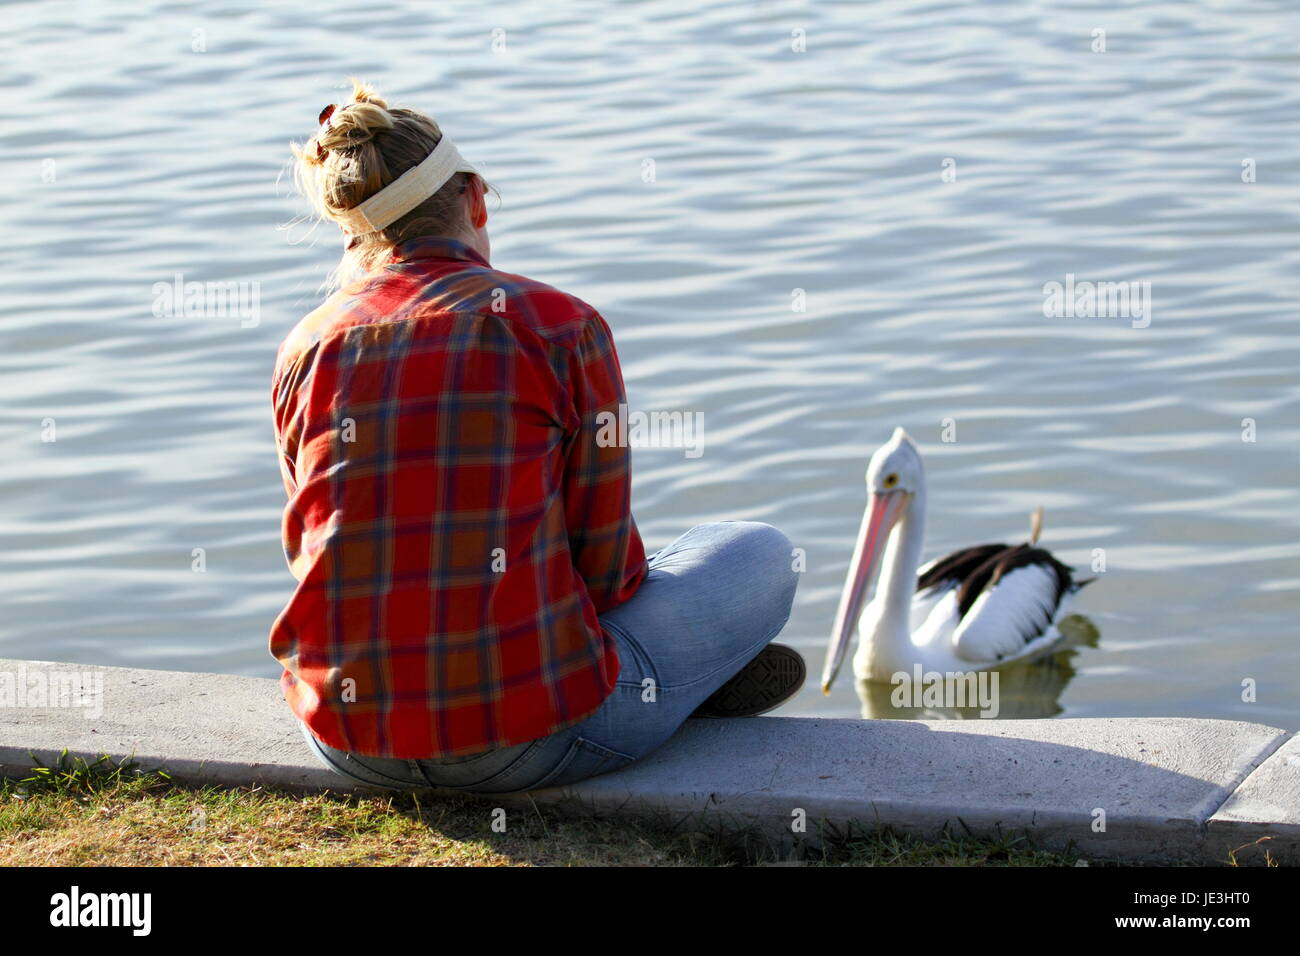 A blond lady in her thirties watches an Australia Pelican swimming. - Stock Image